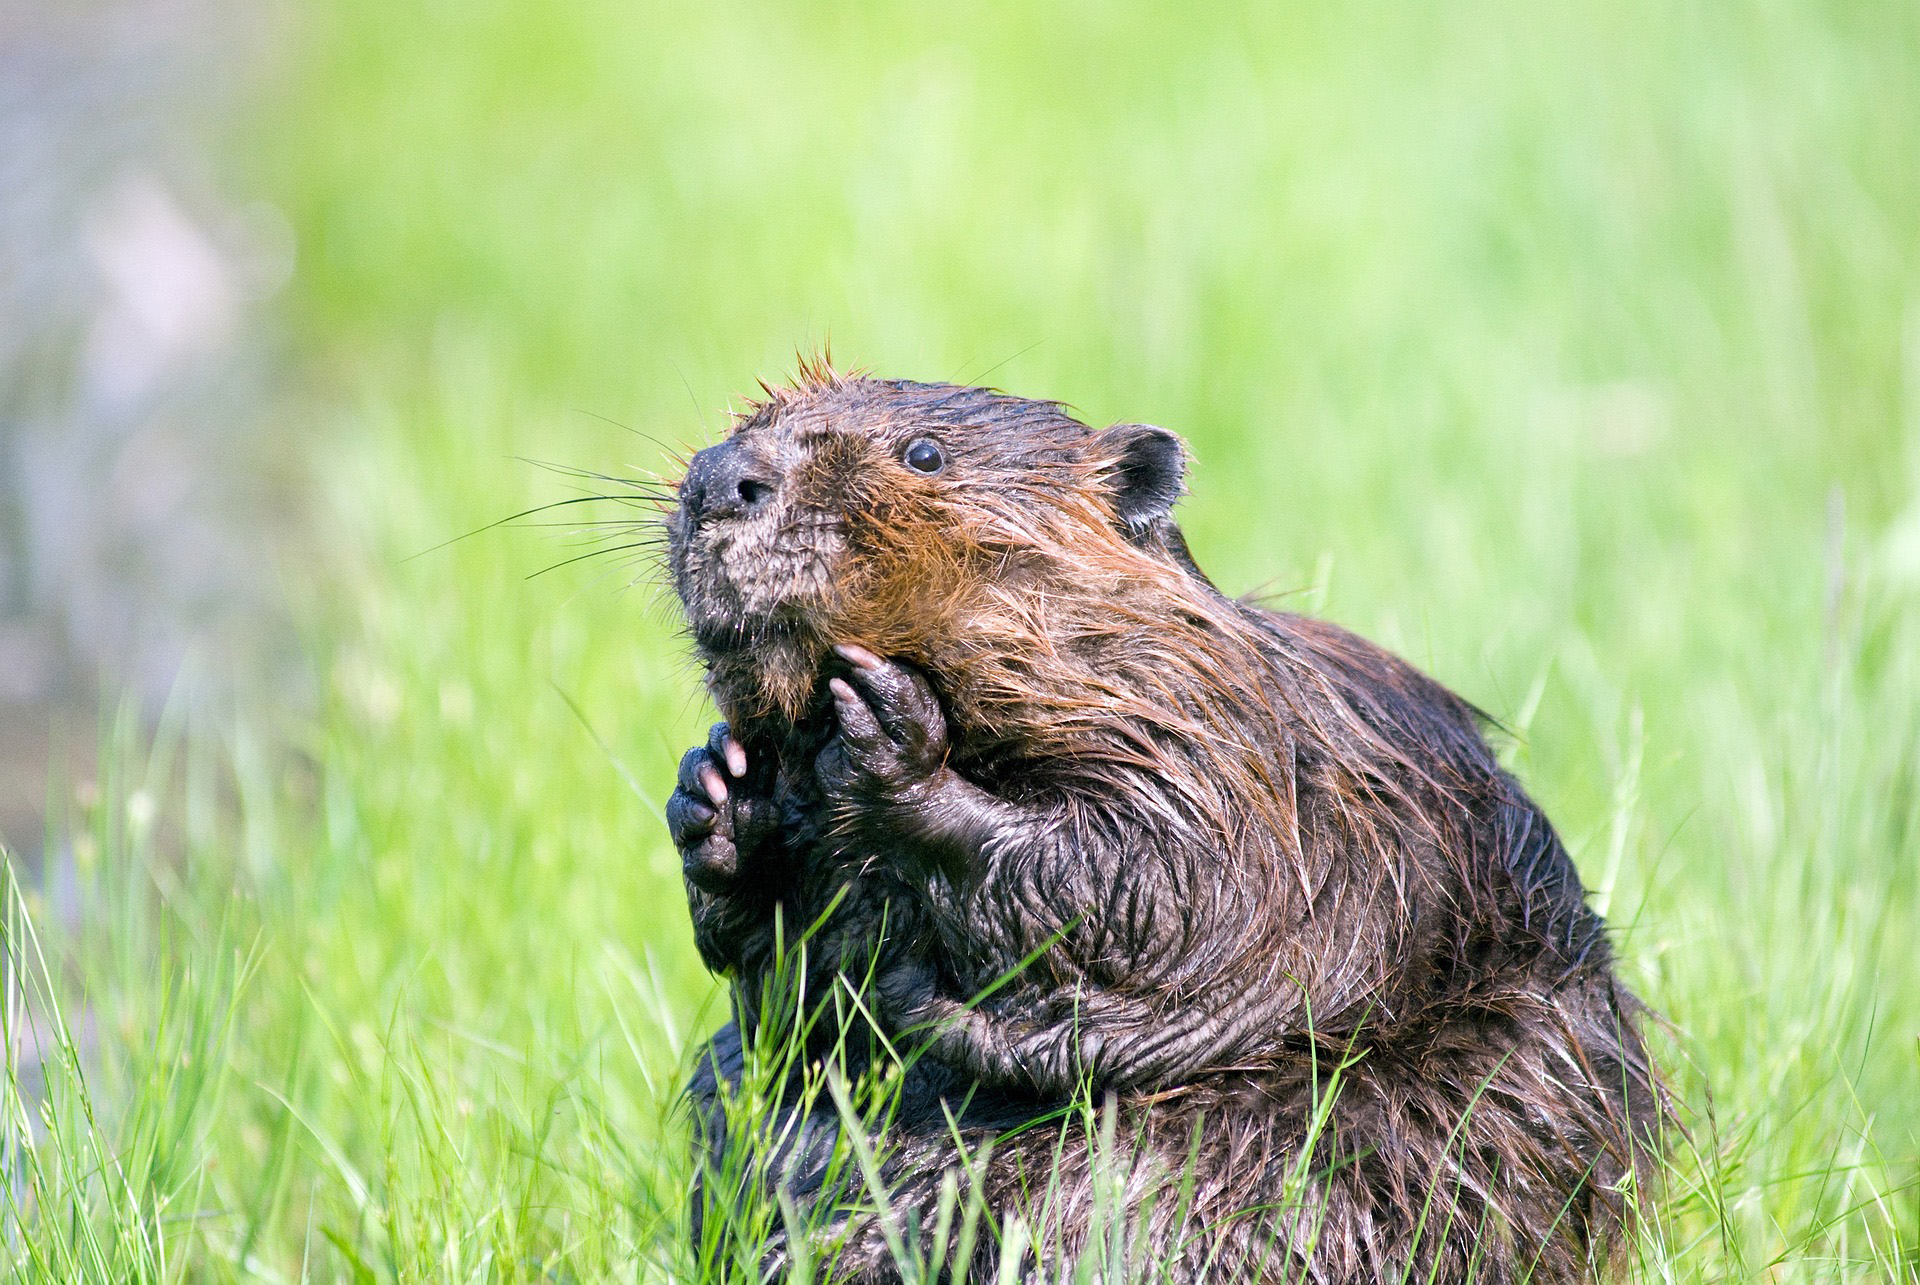 A beaver sits on its hind legs in long grass